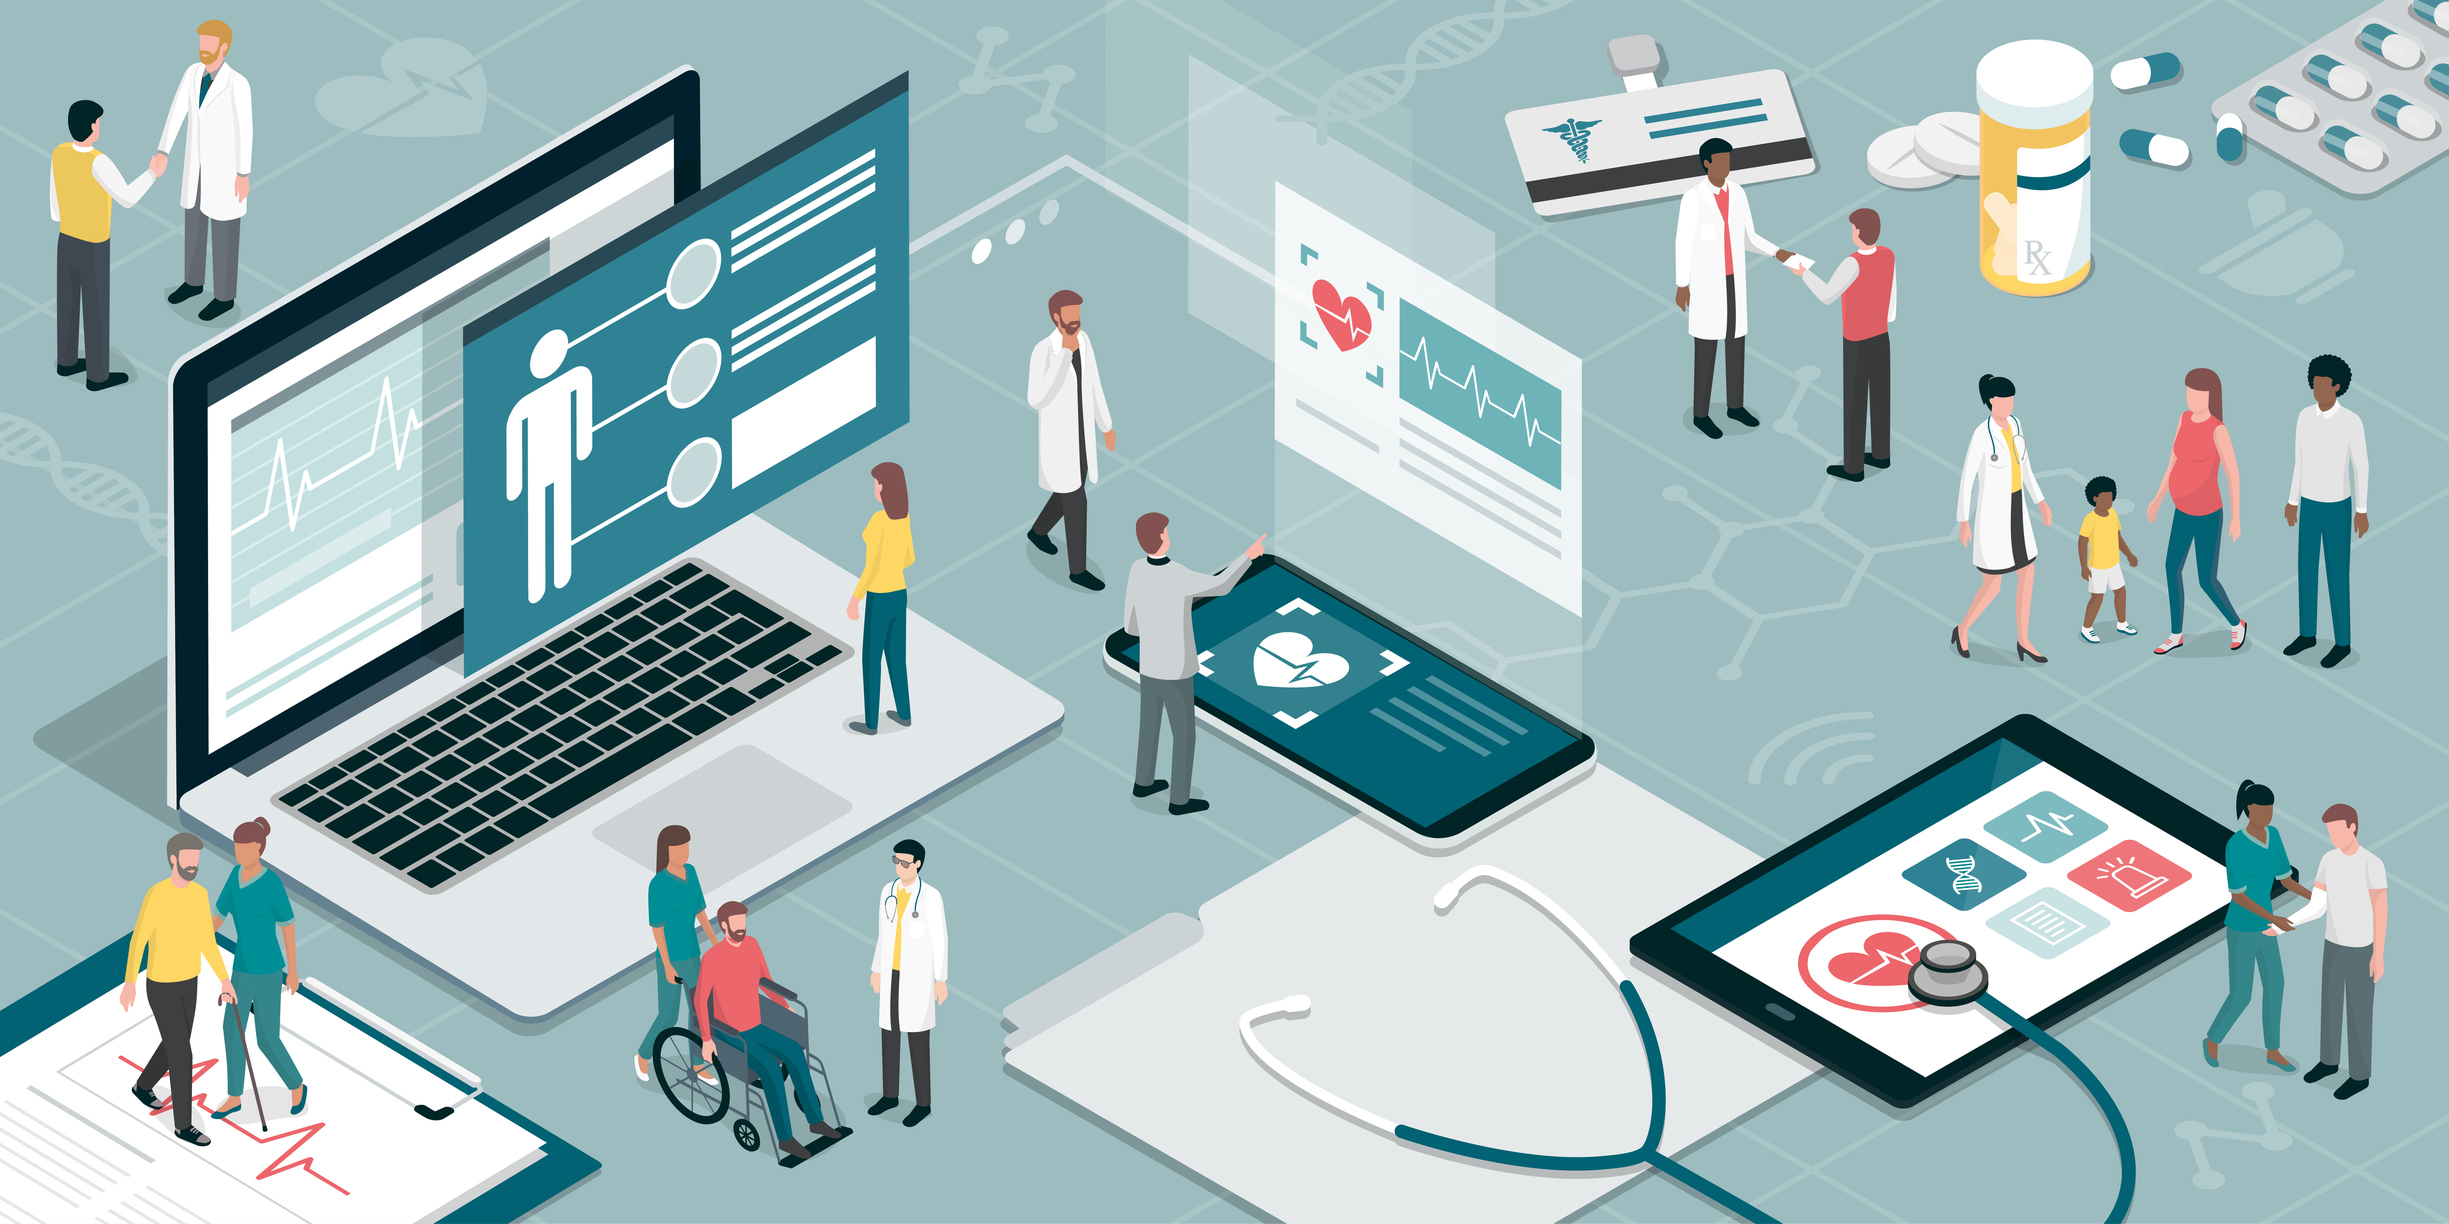 healthcare and technology illustration of electronic health records (EHR)